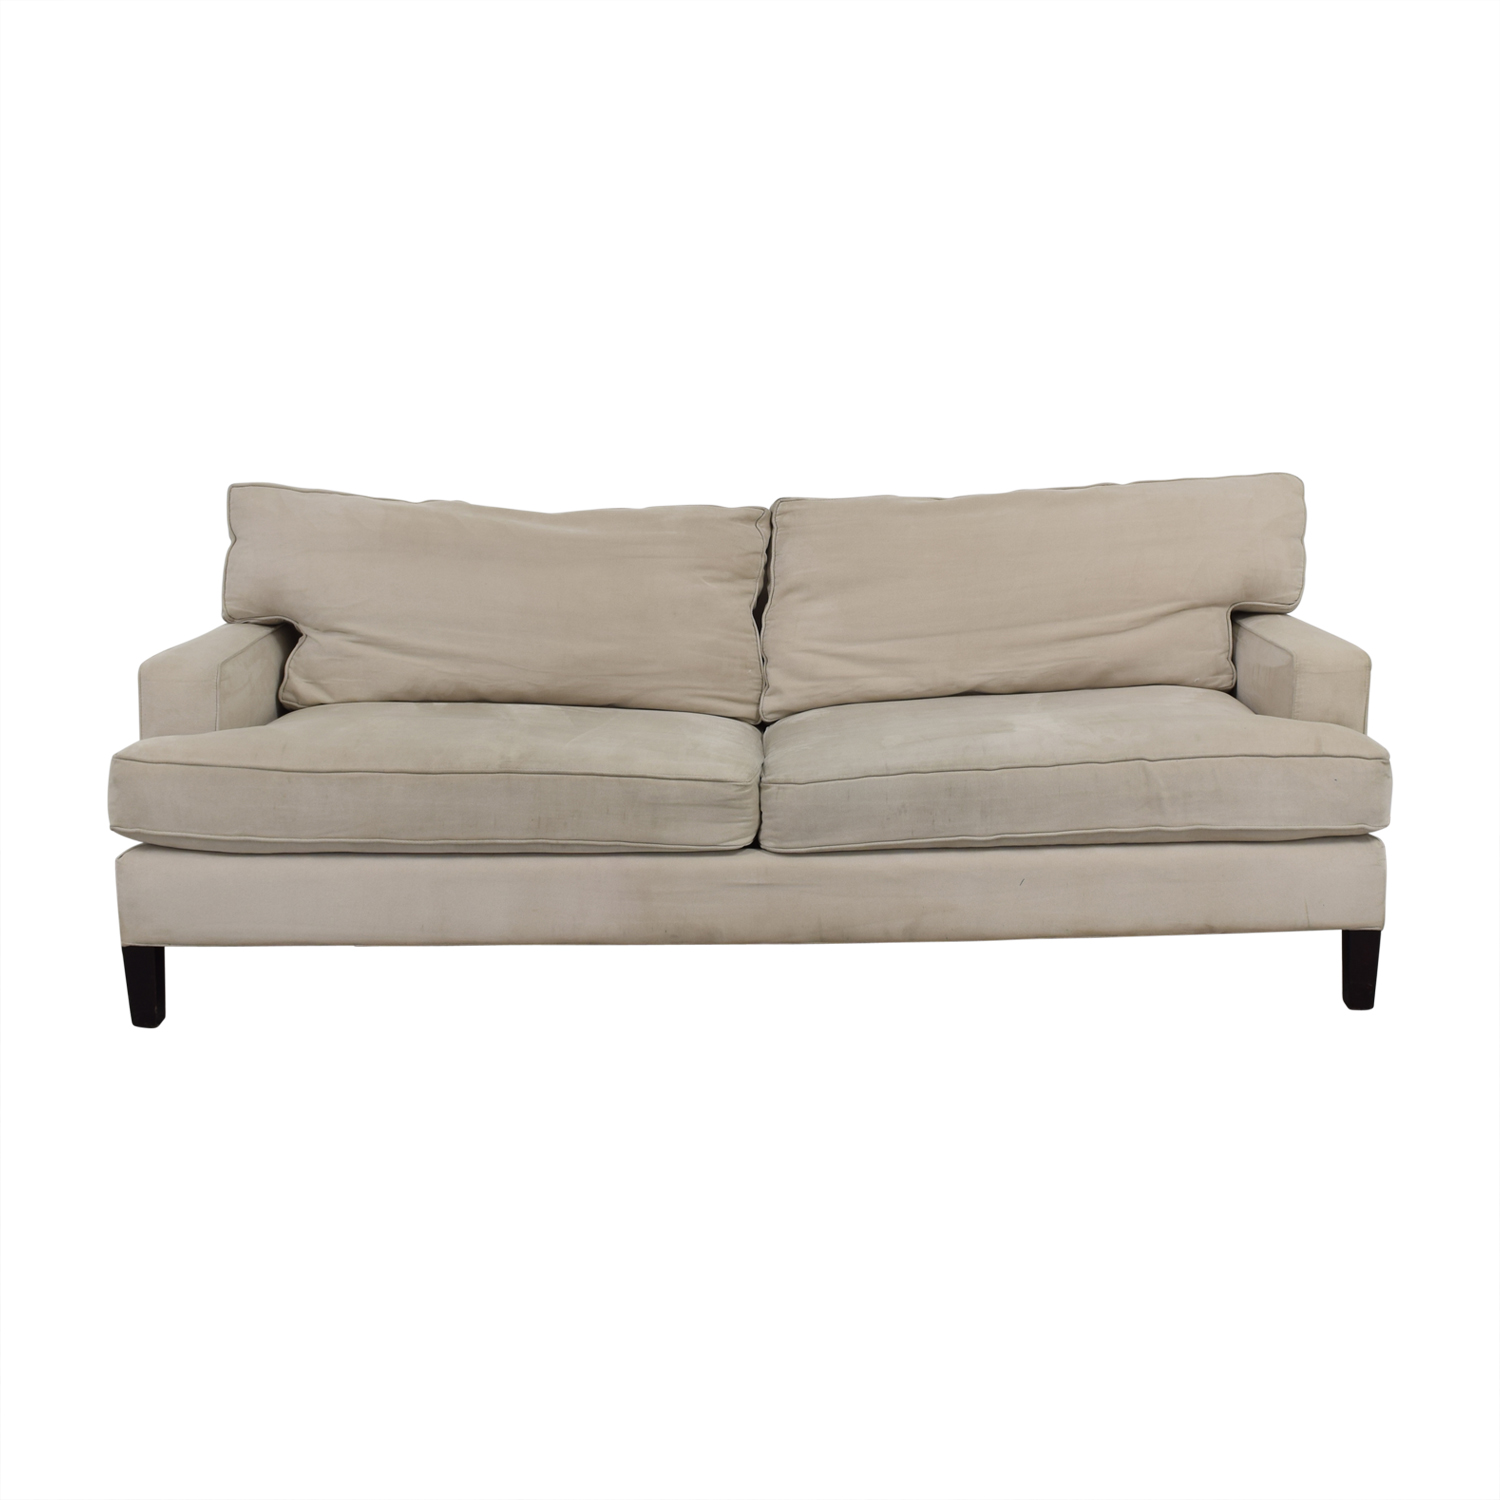 Room & Board Room & Board Hawthorne Couch Off-White Couch price